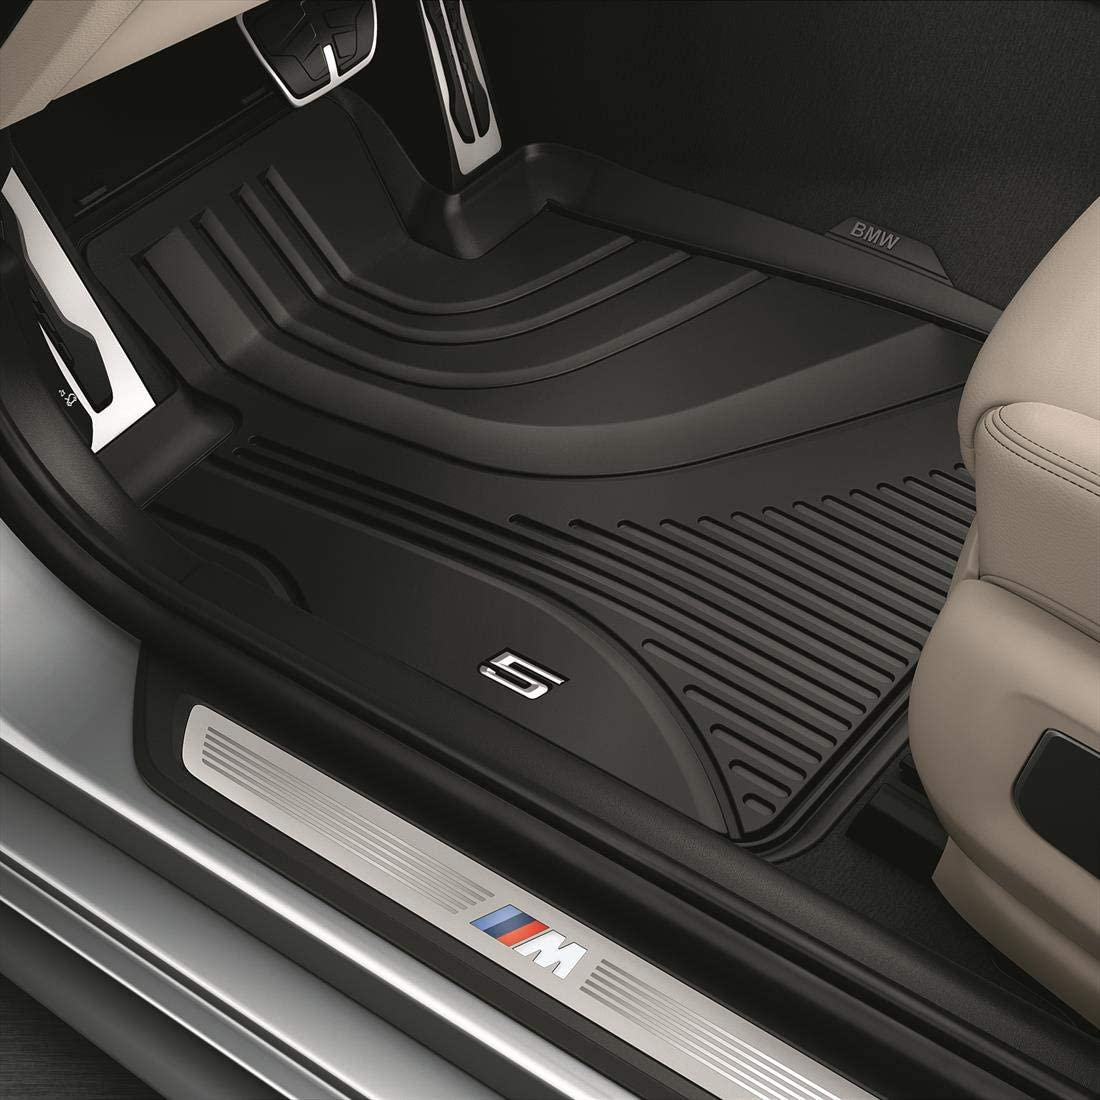 GGBAILEY D2478A-F1A-BLK/_BR Custom Fit Car Mats for 2006 2010 2007 2009 2011 Honda Civic Hybrid Black with Red Edging Driver /& Passenger Floor 2008